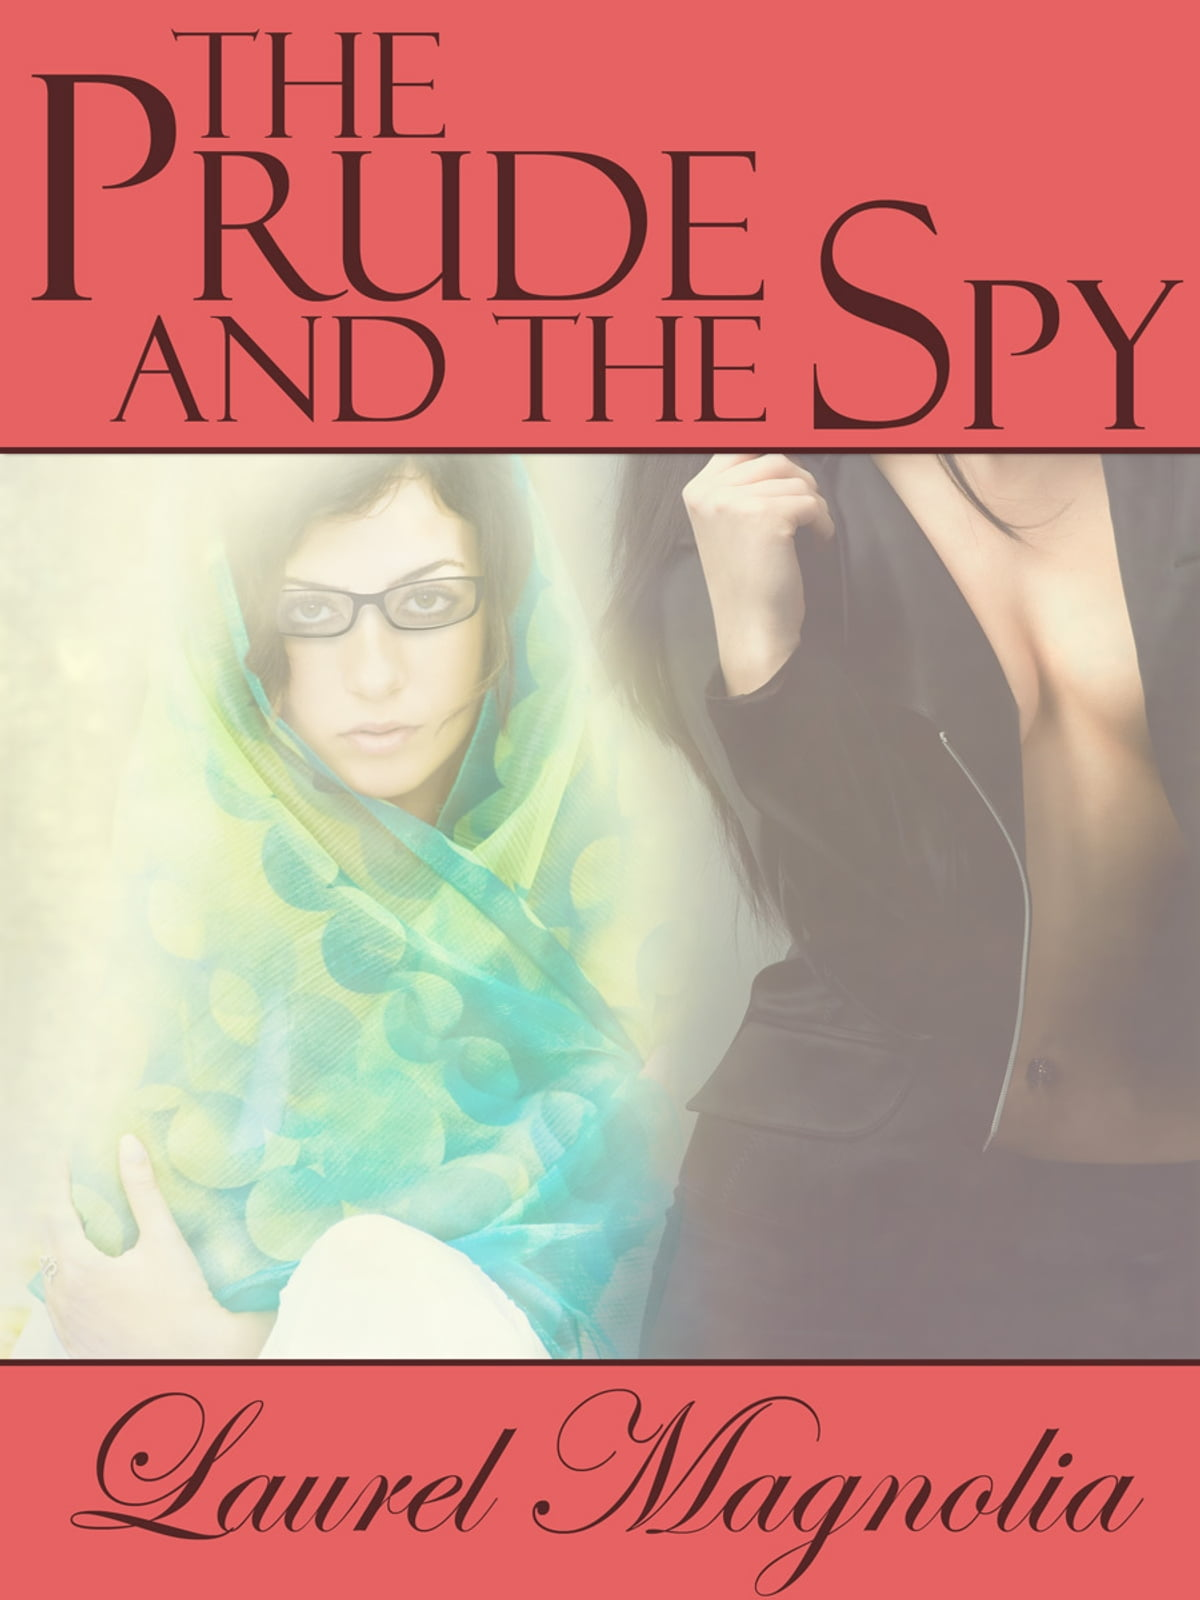 The Prude and the Spy eBook di Laurel Magnolia - 9781465821997 | Rakuten  Kobo